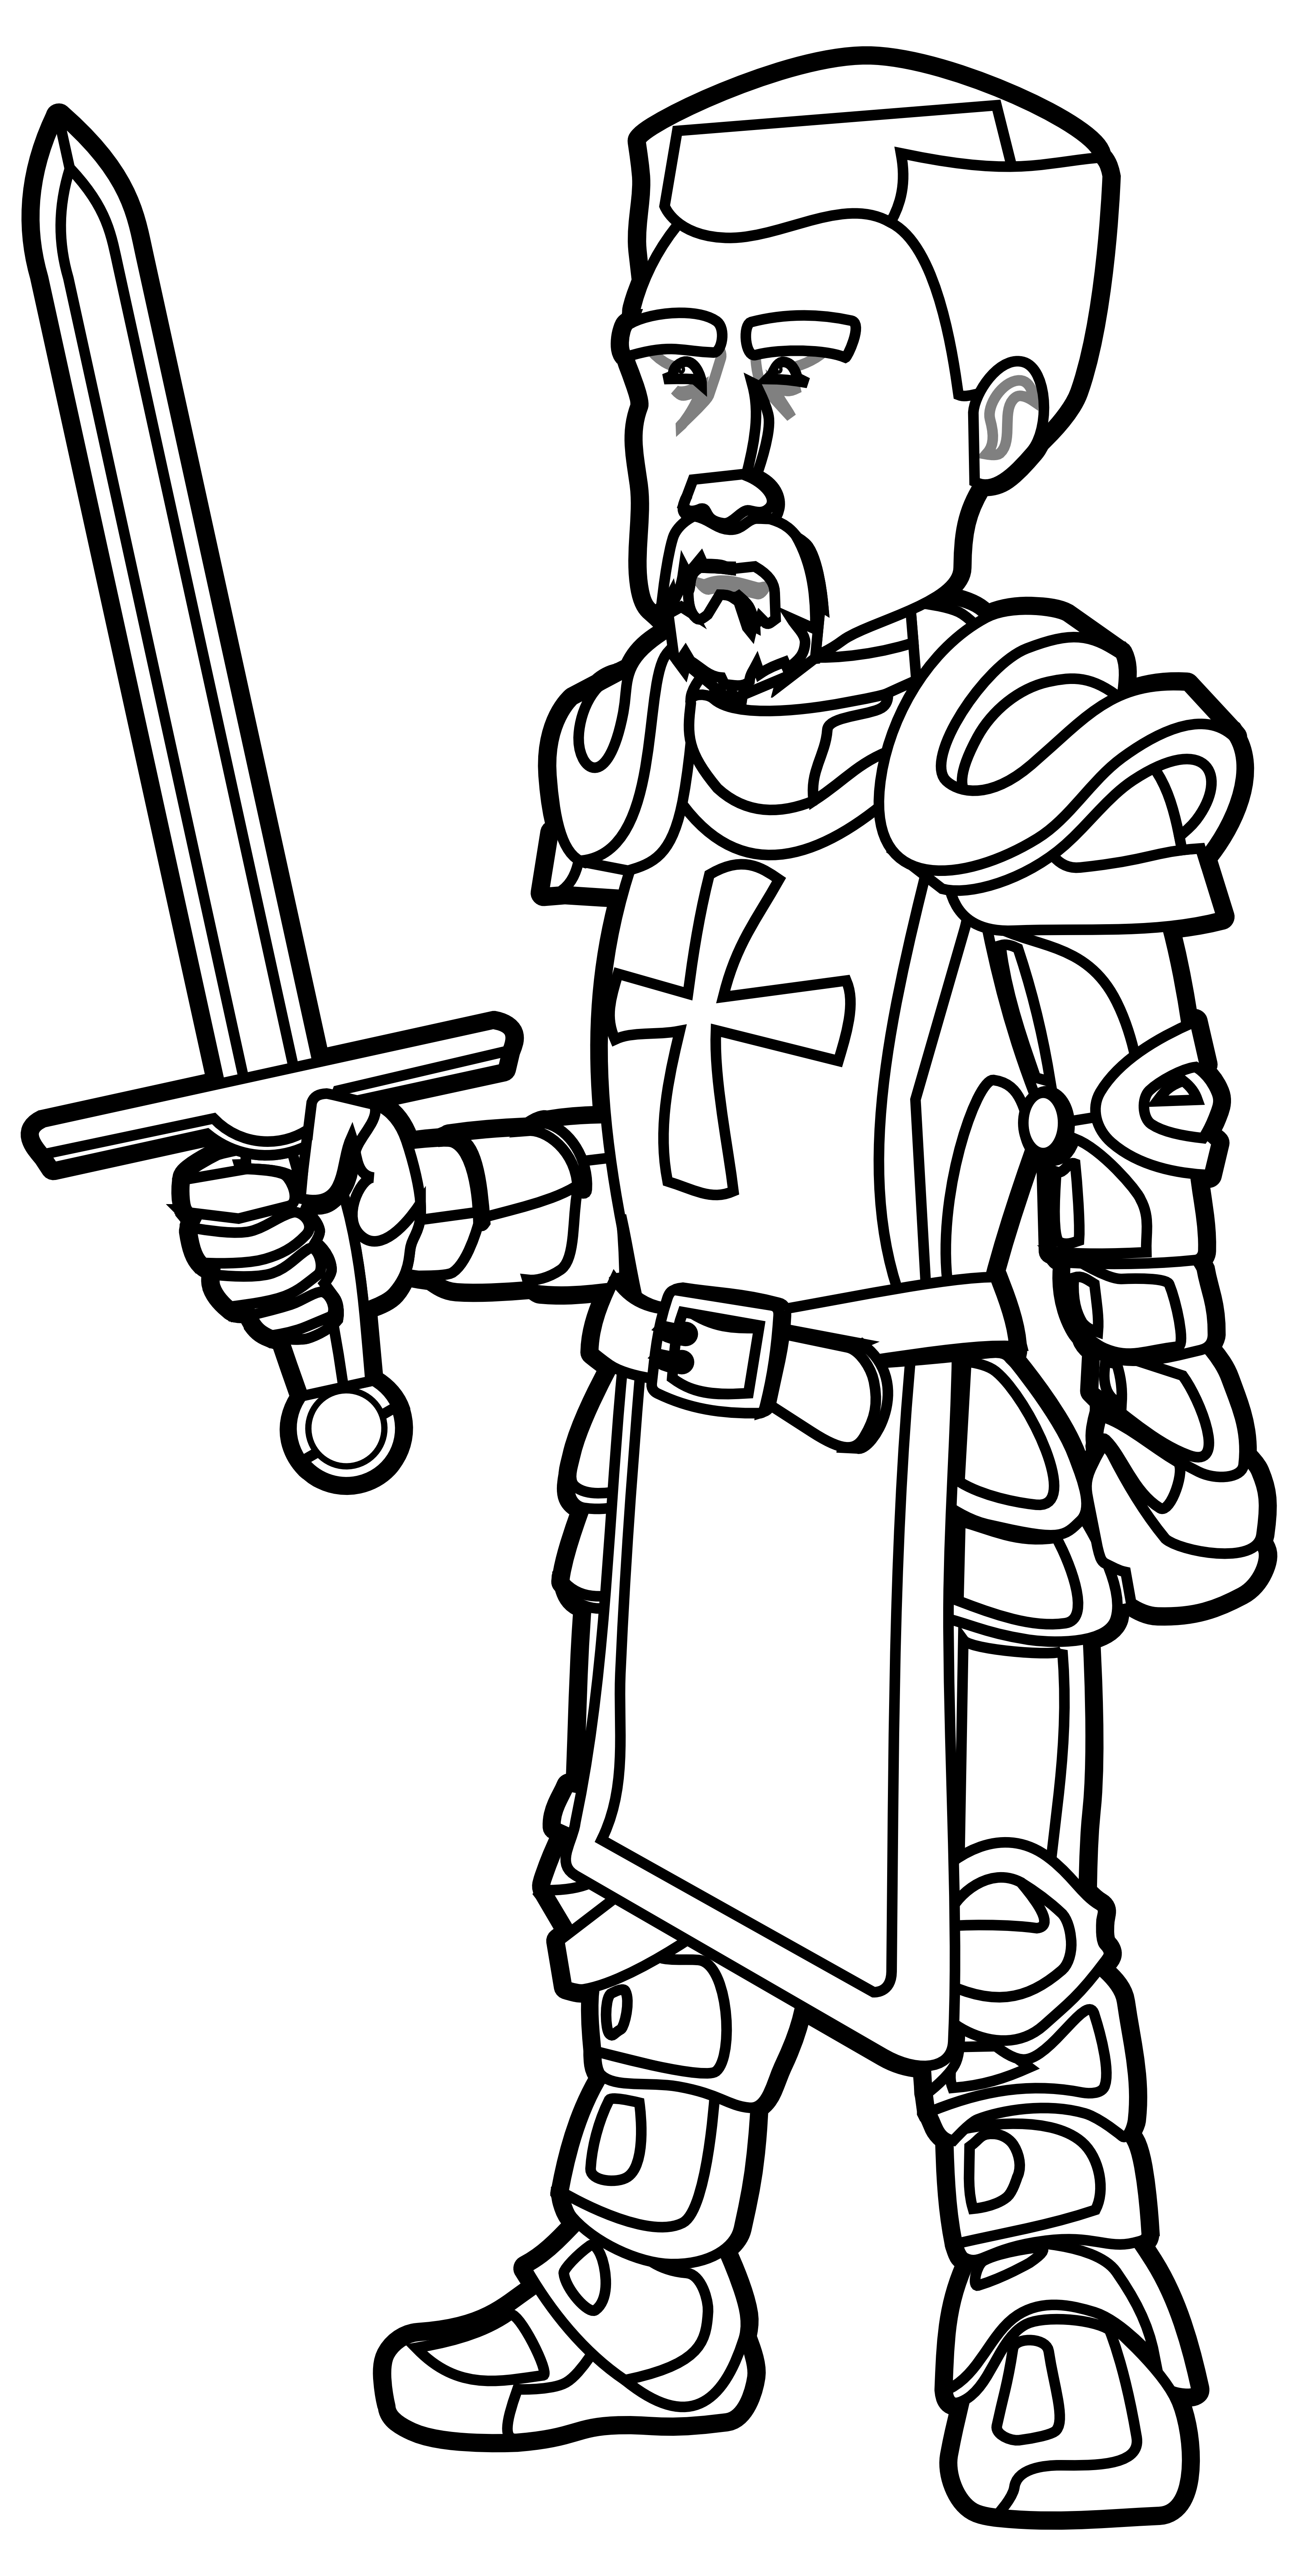 Panda free images knight. Trex clipart black and white